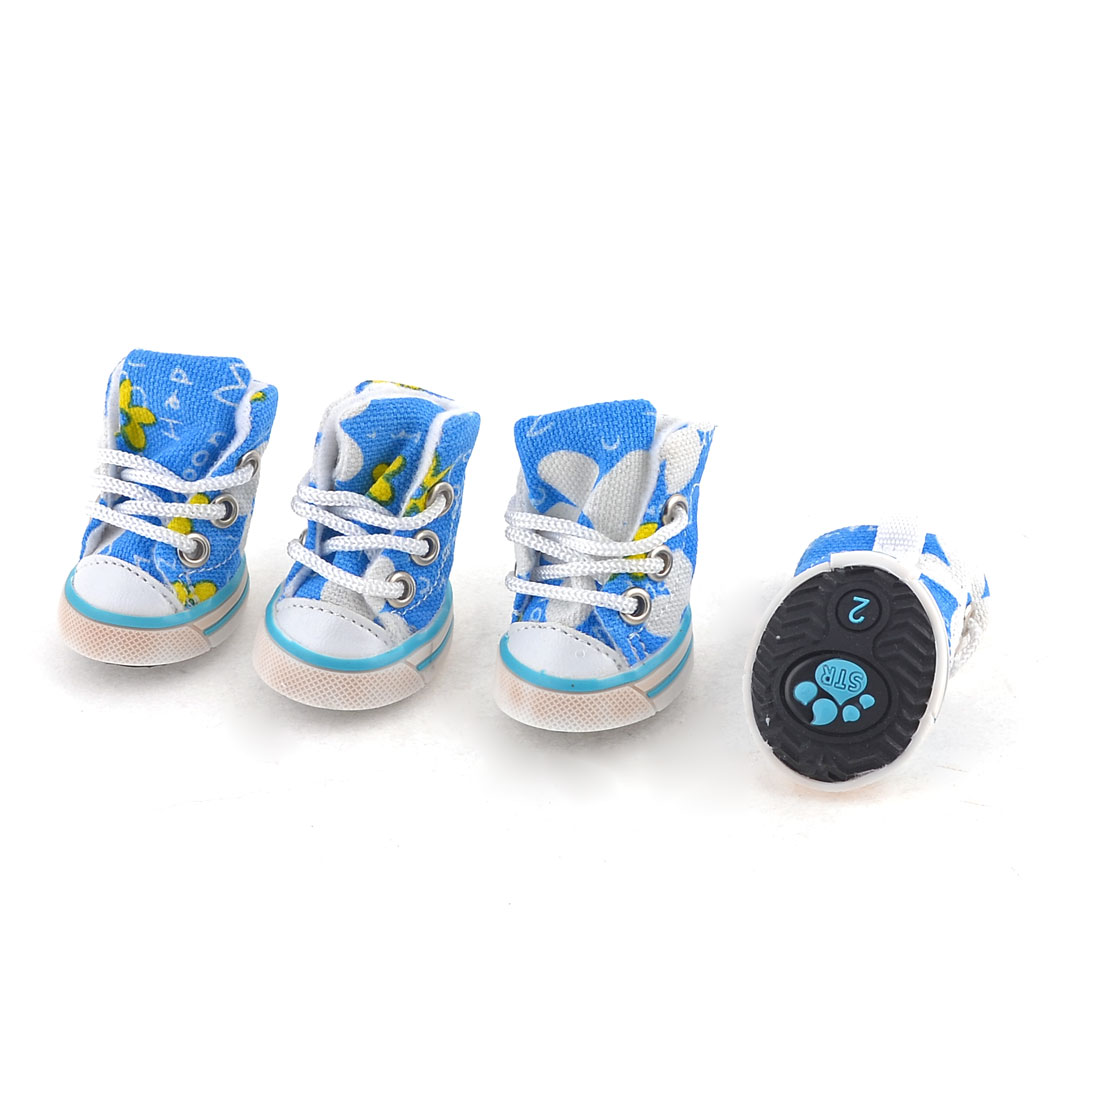 2 Pairs Blue White Flower Pattern Nylon String Pet Dog Cat Sport Shoes XS